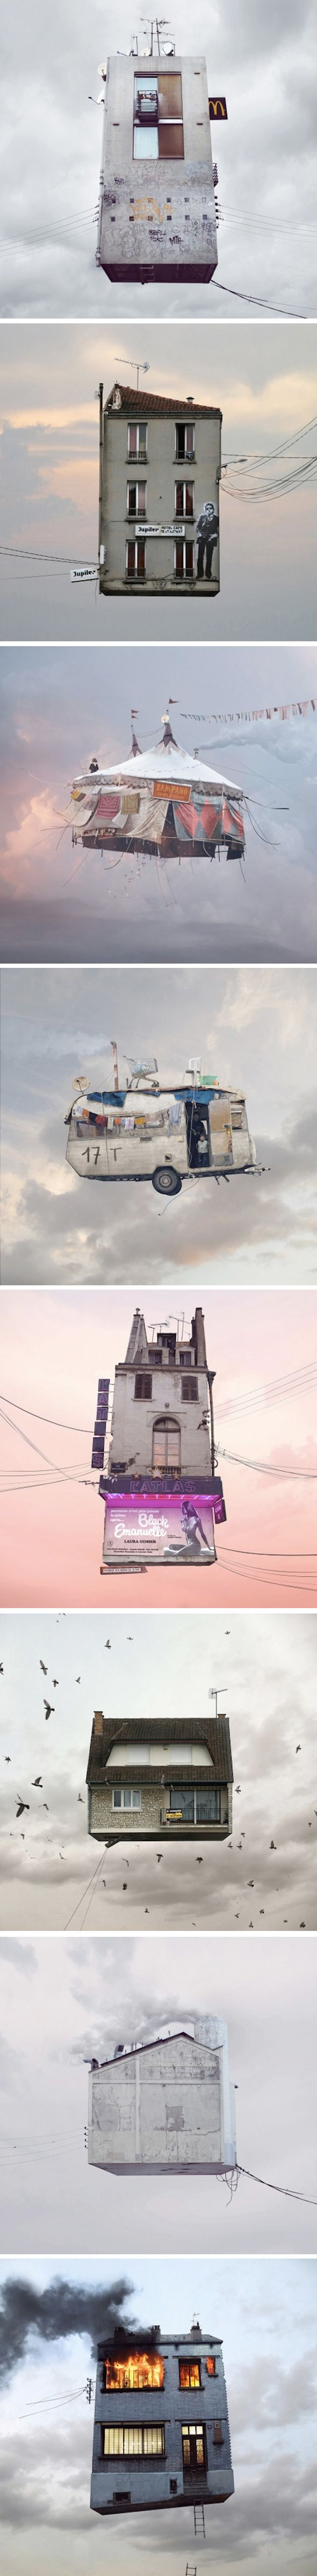 Flying Houses par Laurent Chéhère | Journal du Design